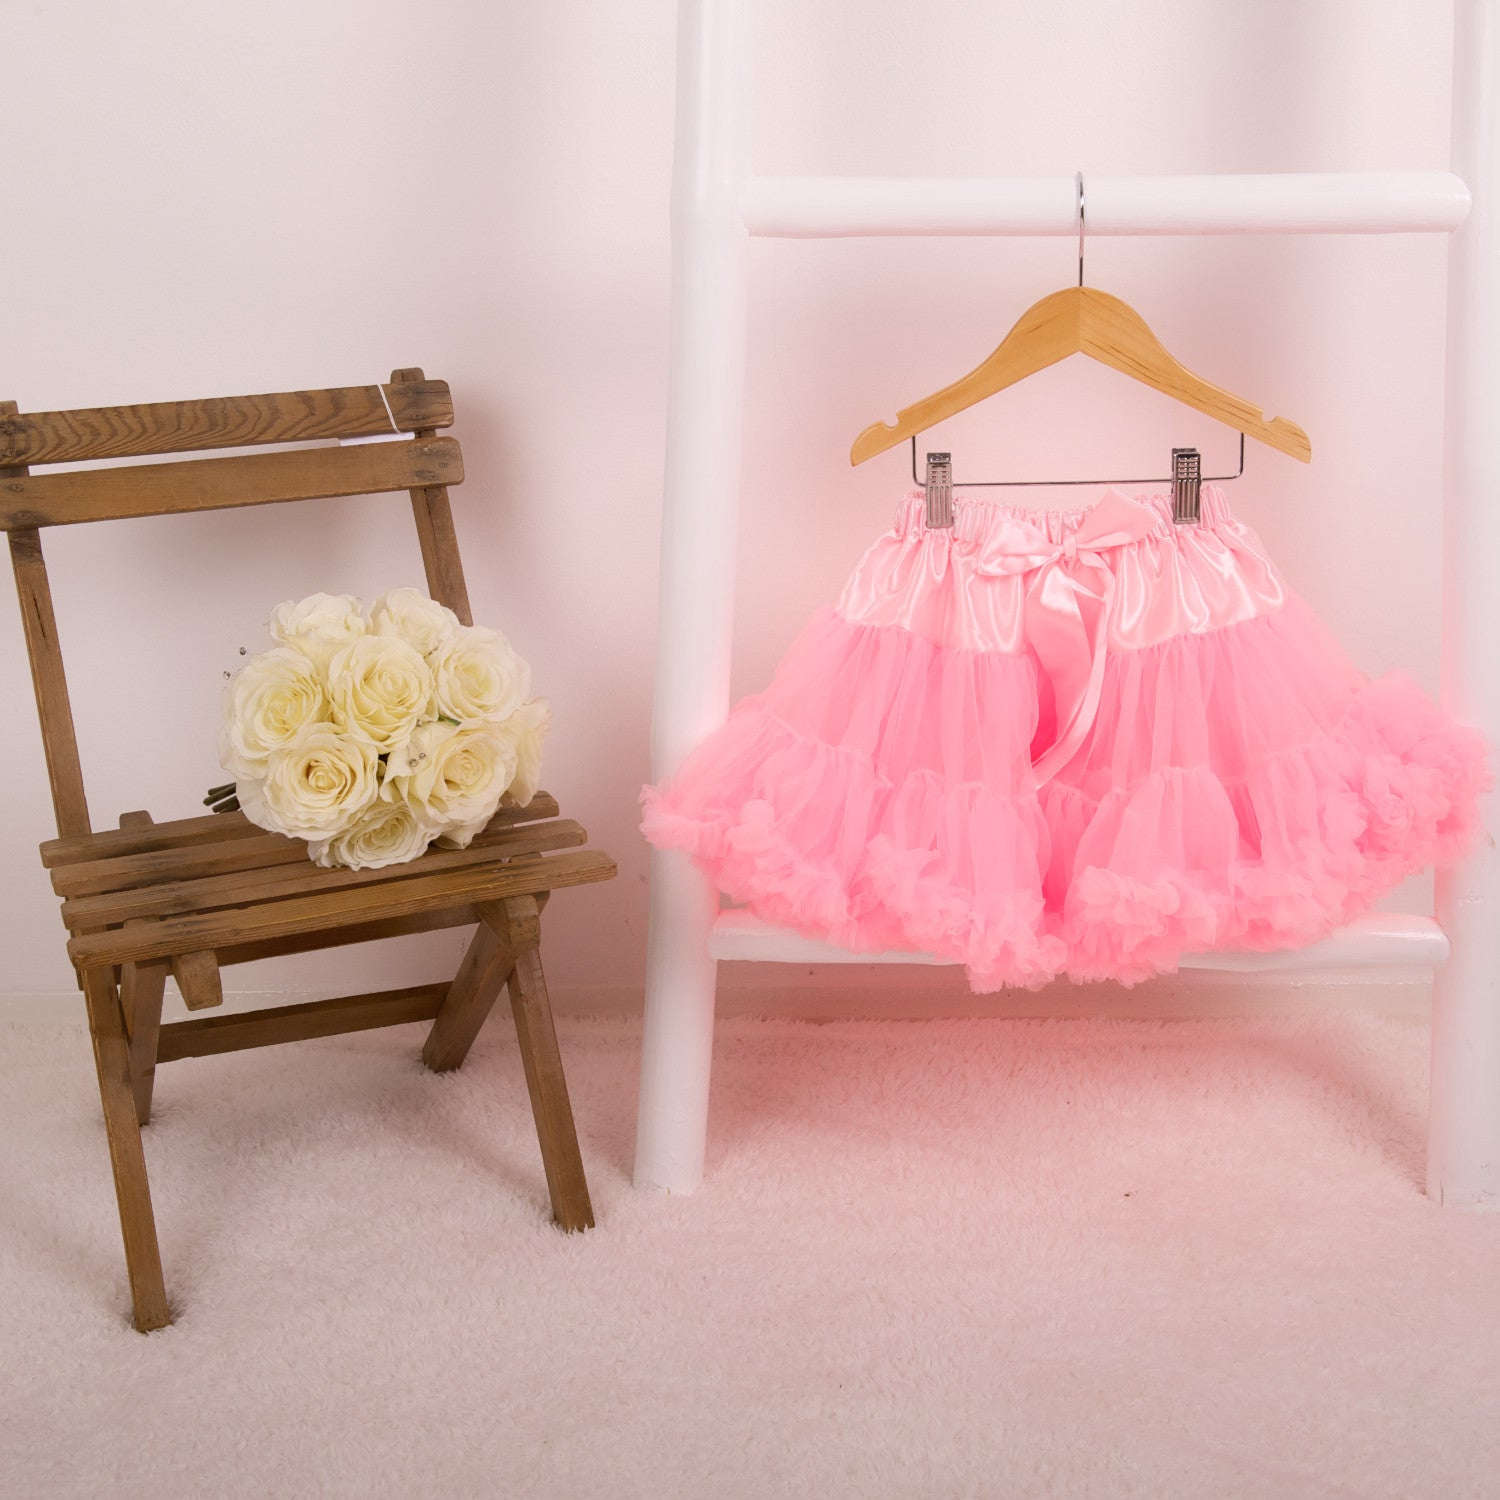 b4ab534e8a58f7 ... pettiskirt tutu petticoat candy bows angels face bob and blossom miss  francis petticoat underskirt not on